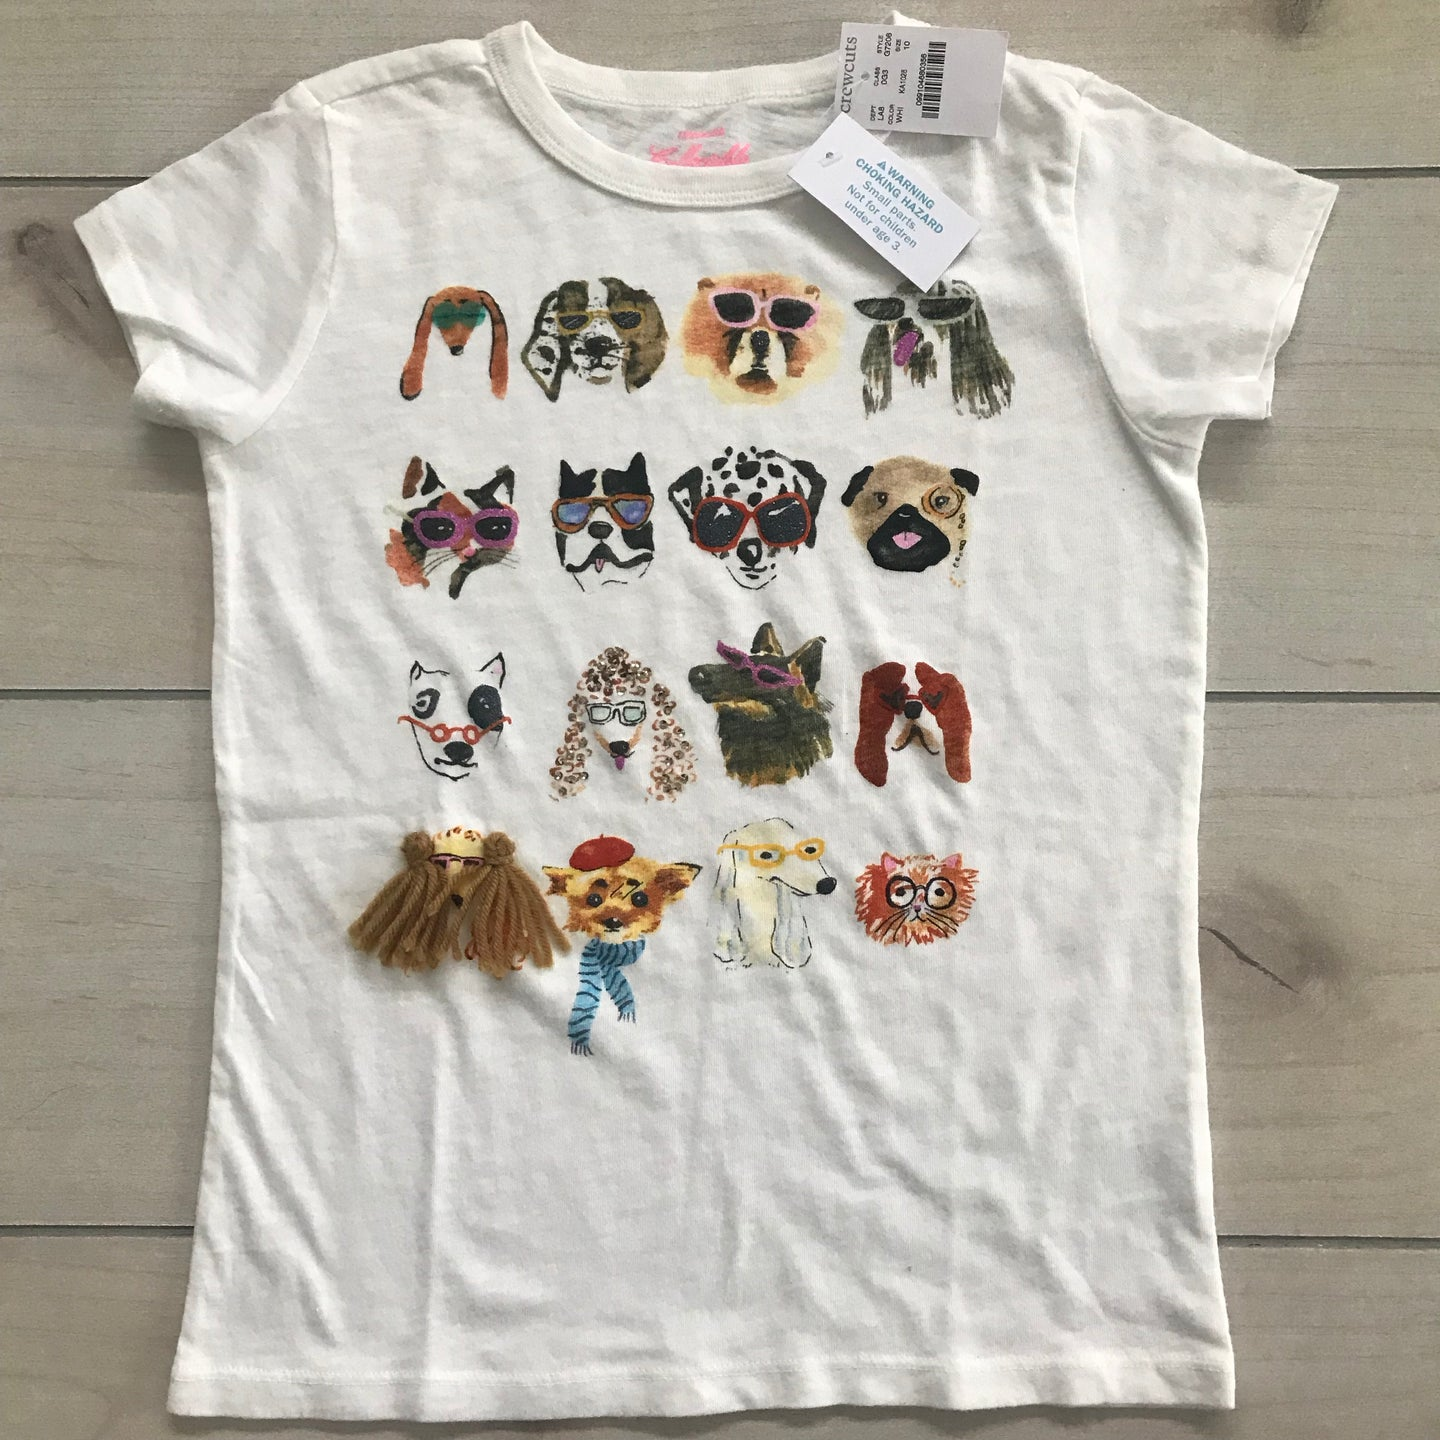 Crewcuts Collectible Dogs Graphic T-Shirt Size 10 NWT